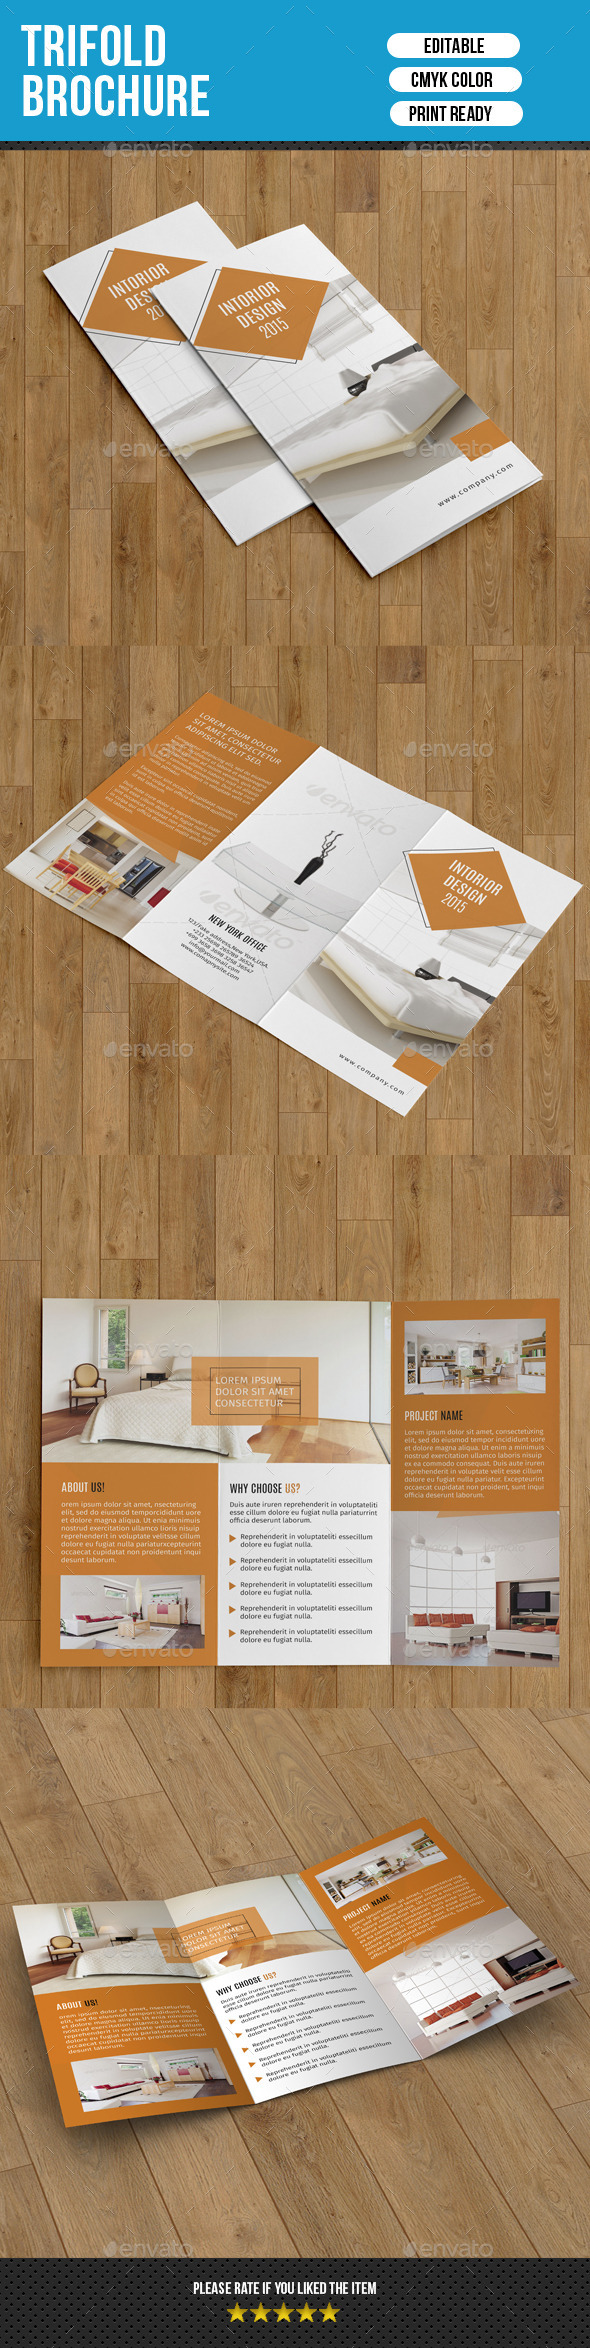 Trifold Brochure for Interior Design-V218